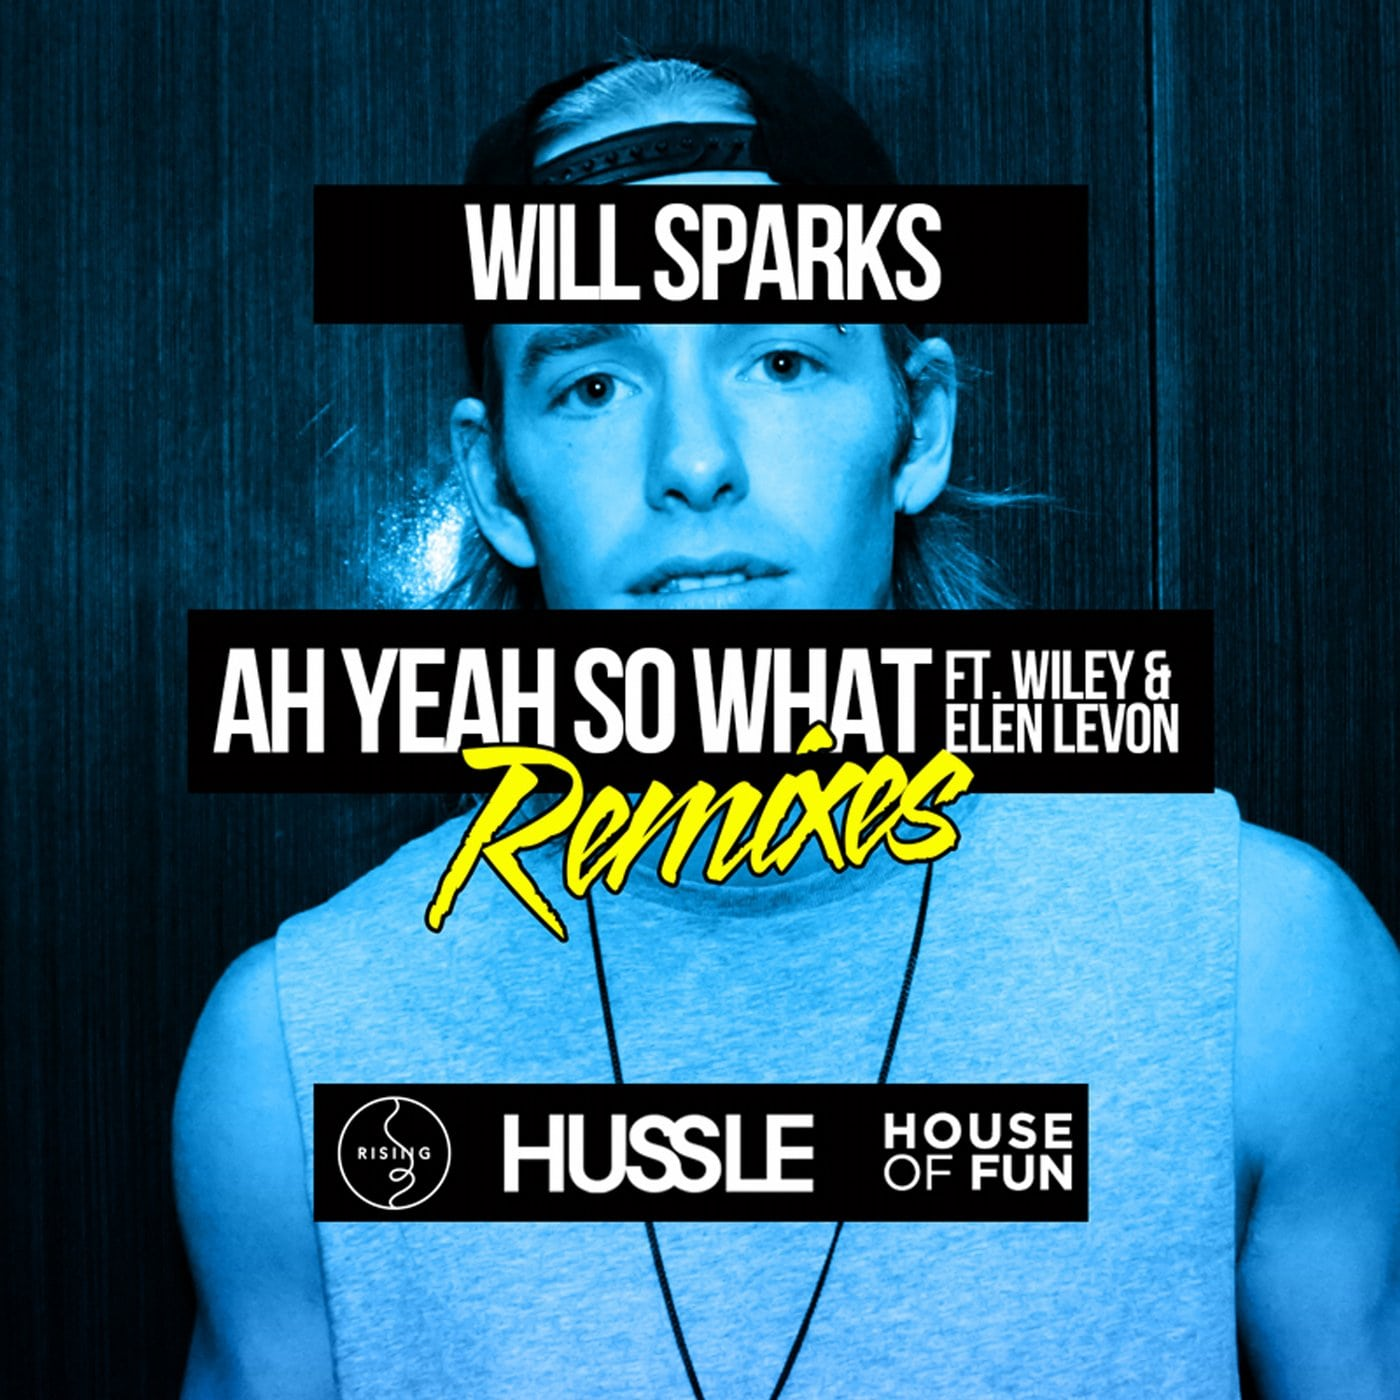 Ah Yeah So What featuring Wiley and Elen Levon extended mix - mixed and mastered by Simon Cohen at Studios 301